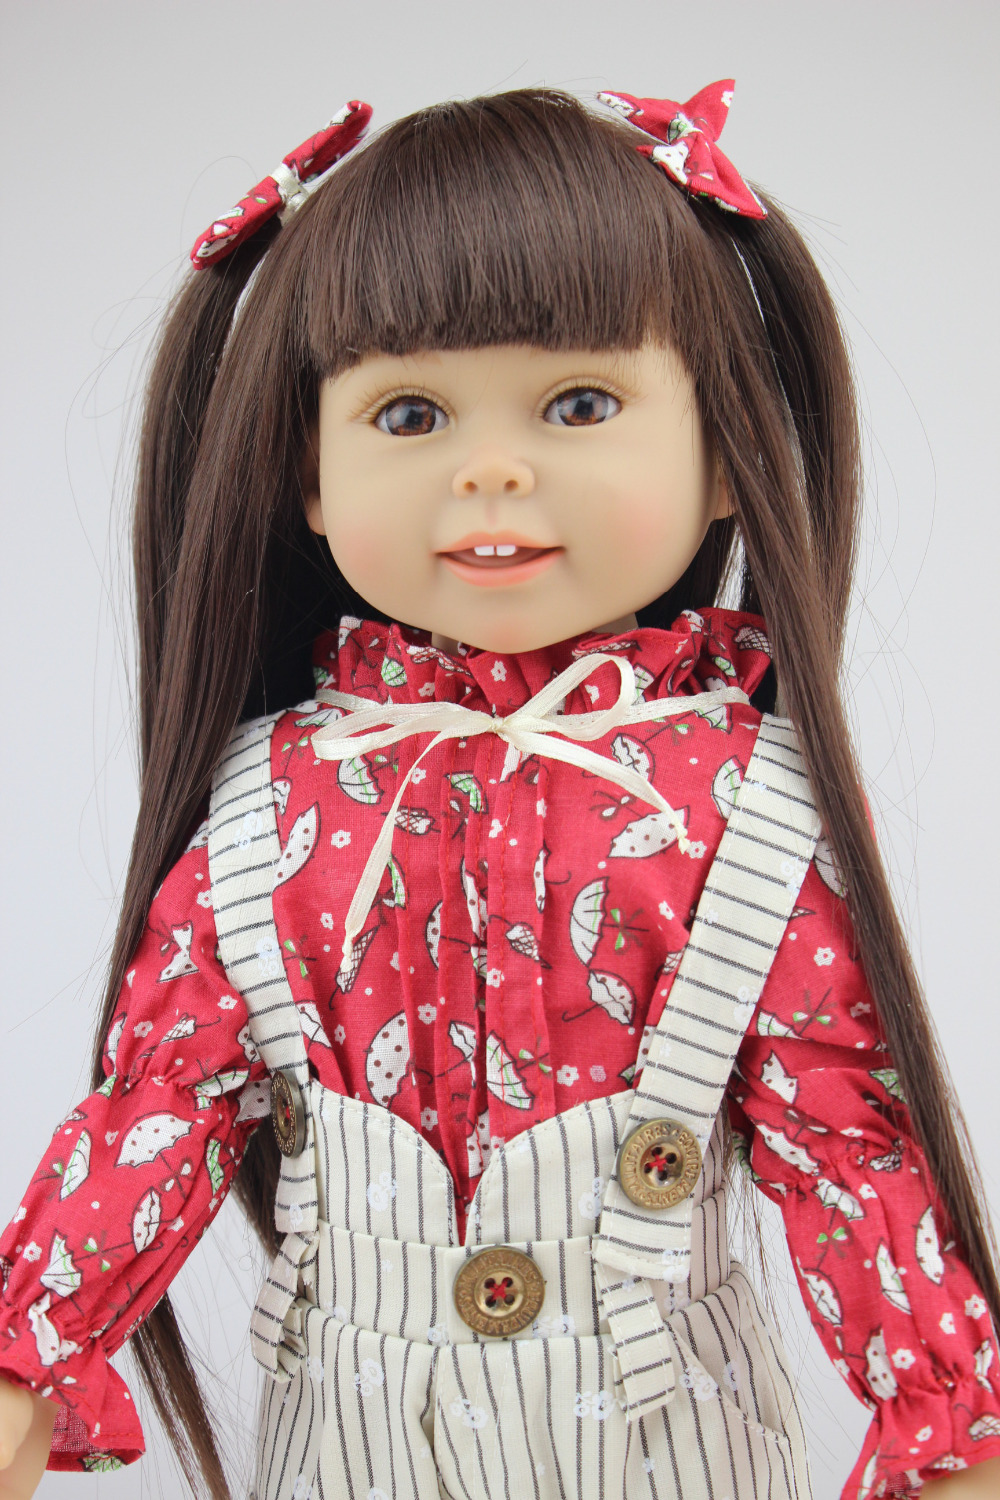 AMERICAN PRINCESS 18 Inch Vinyl Girl Dolls For Sale Brown